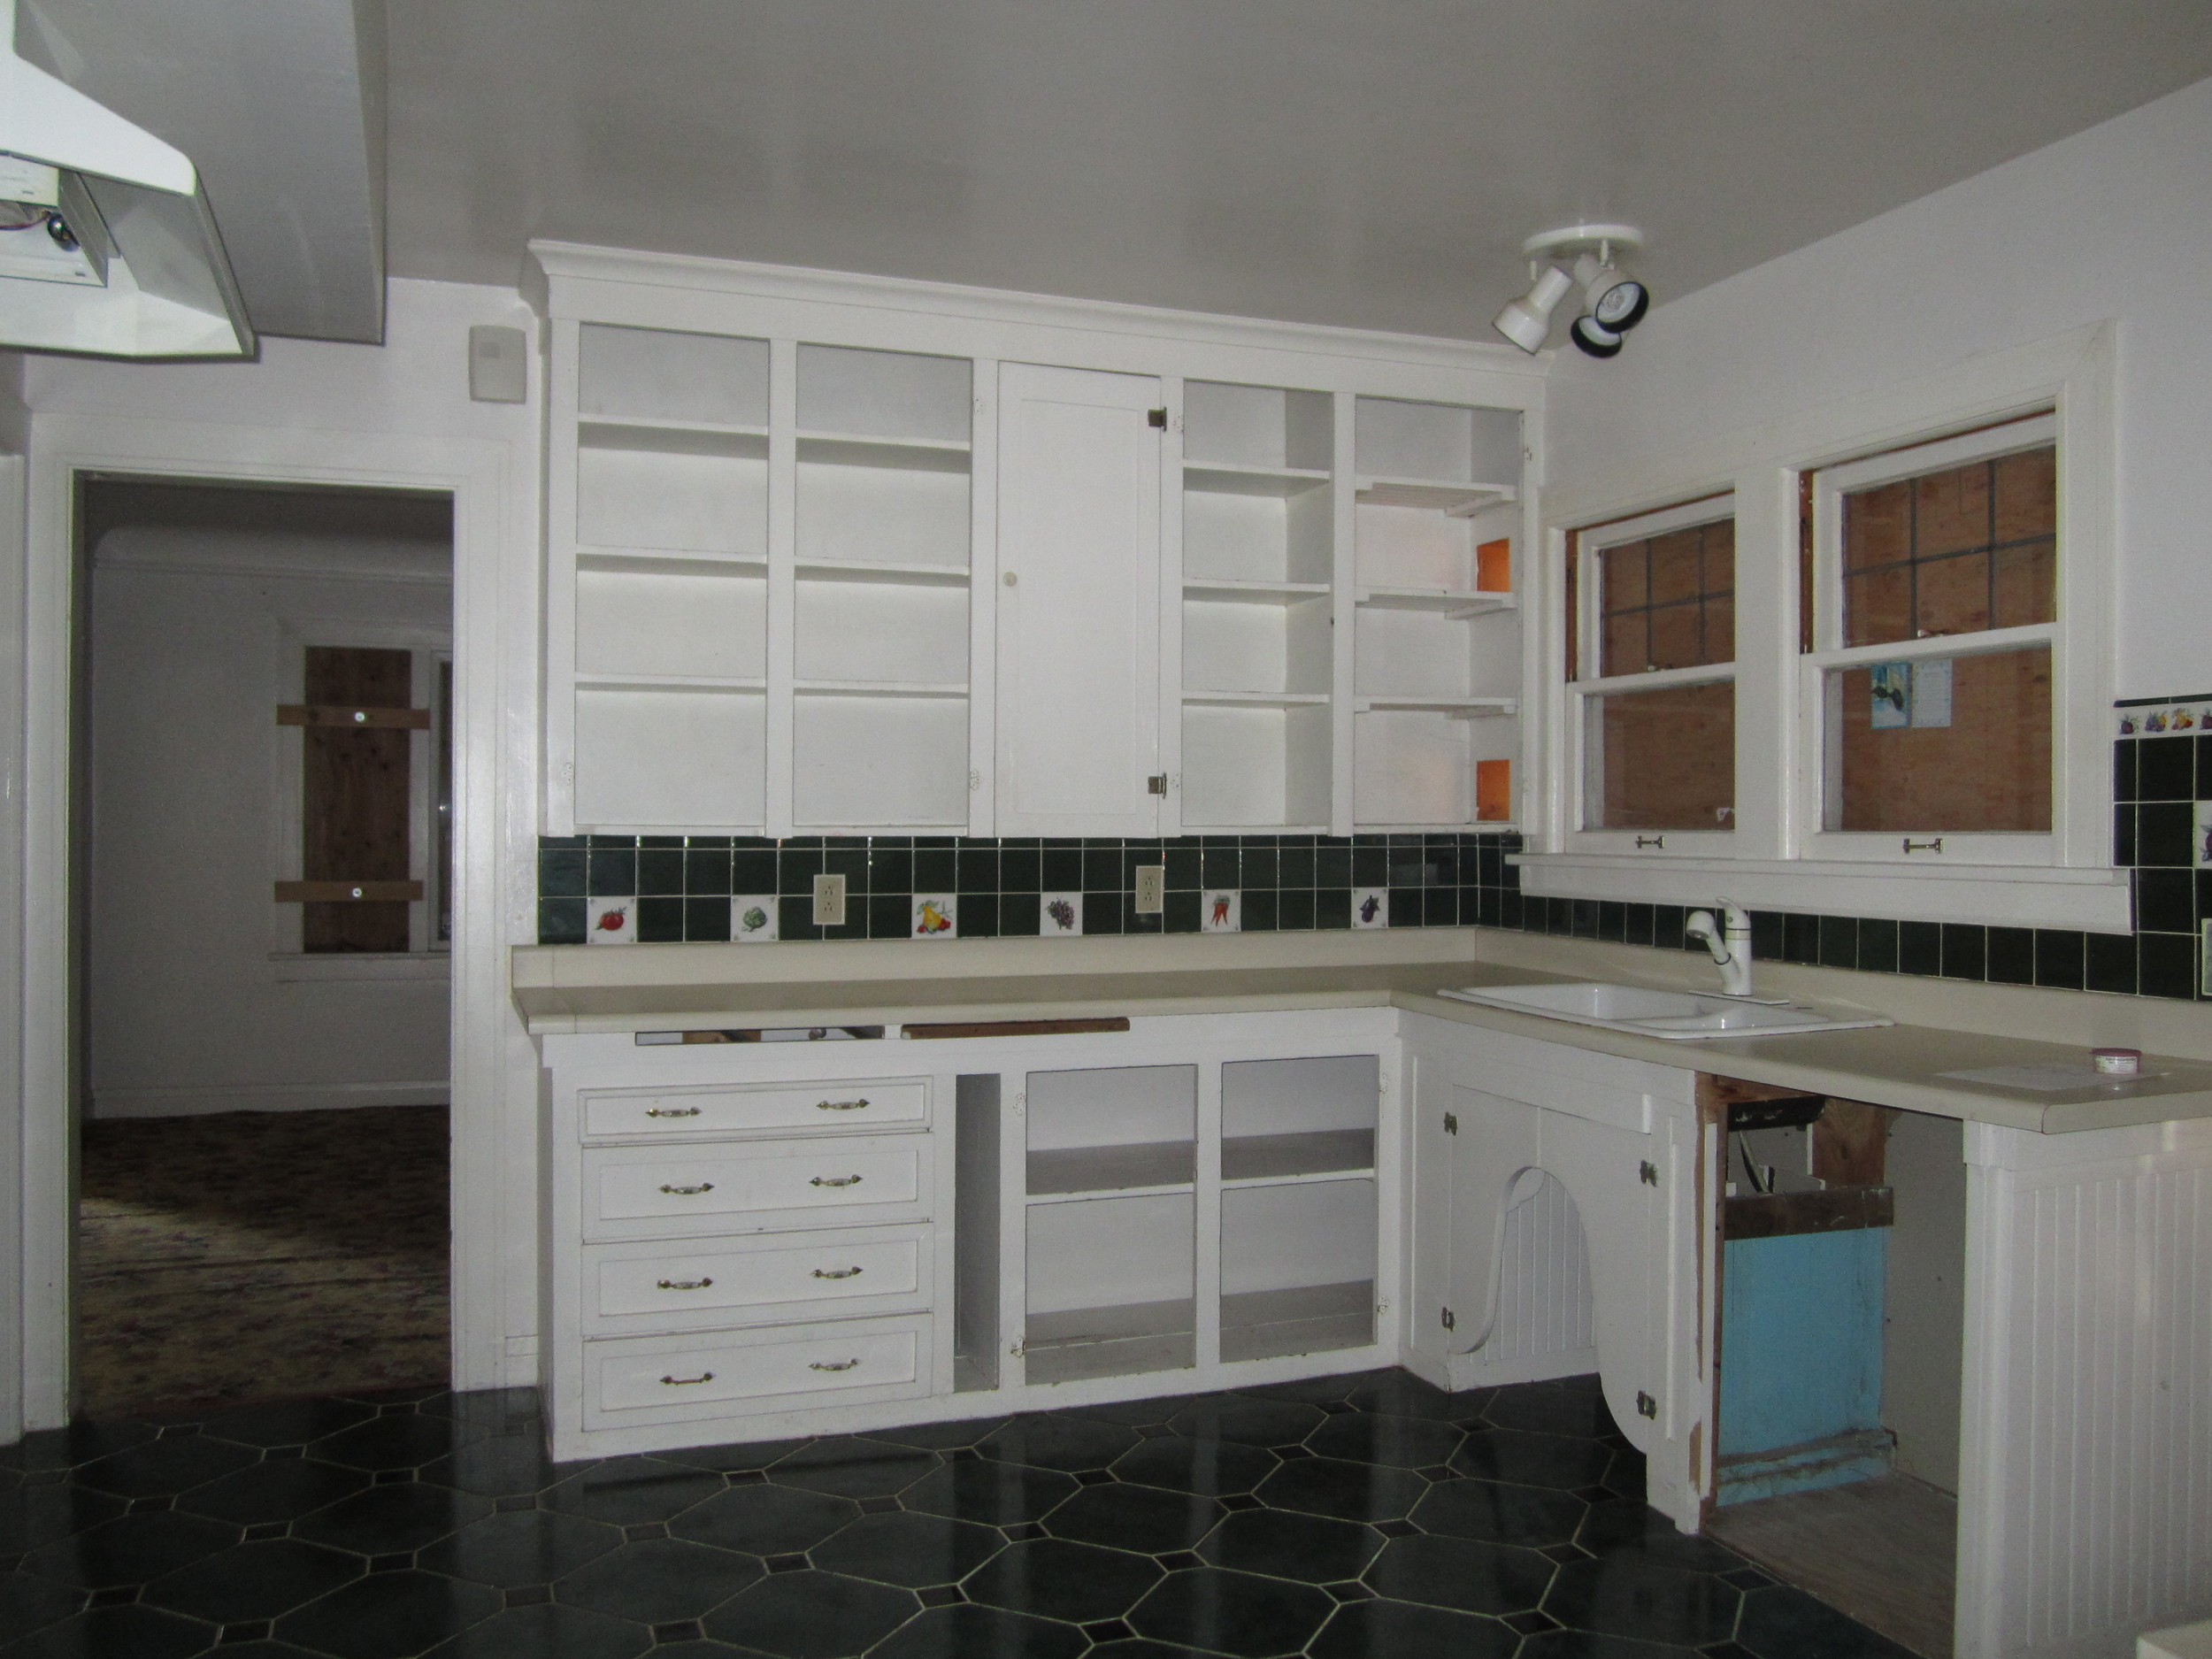 561-869535 - Kitchen 1.JPG